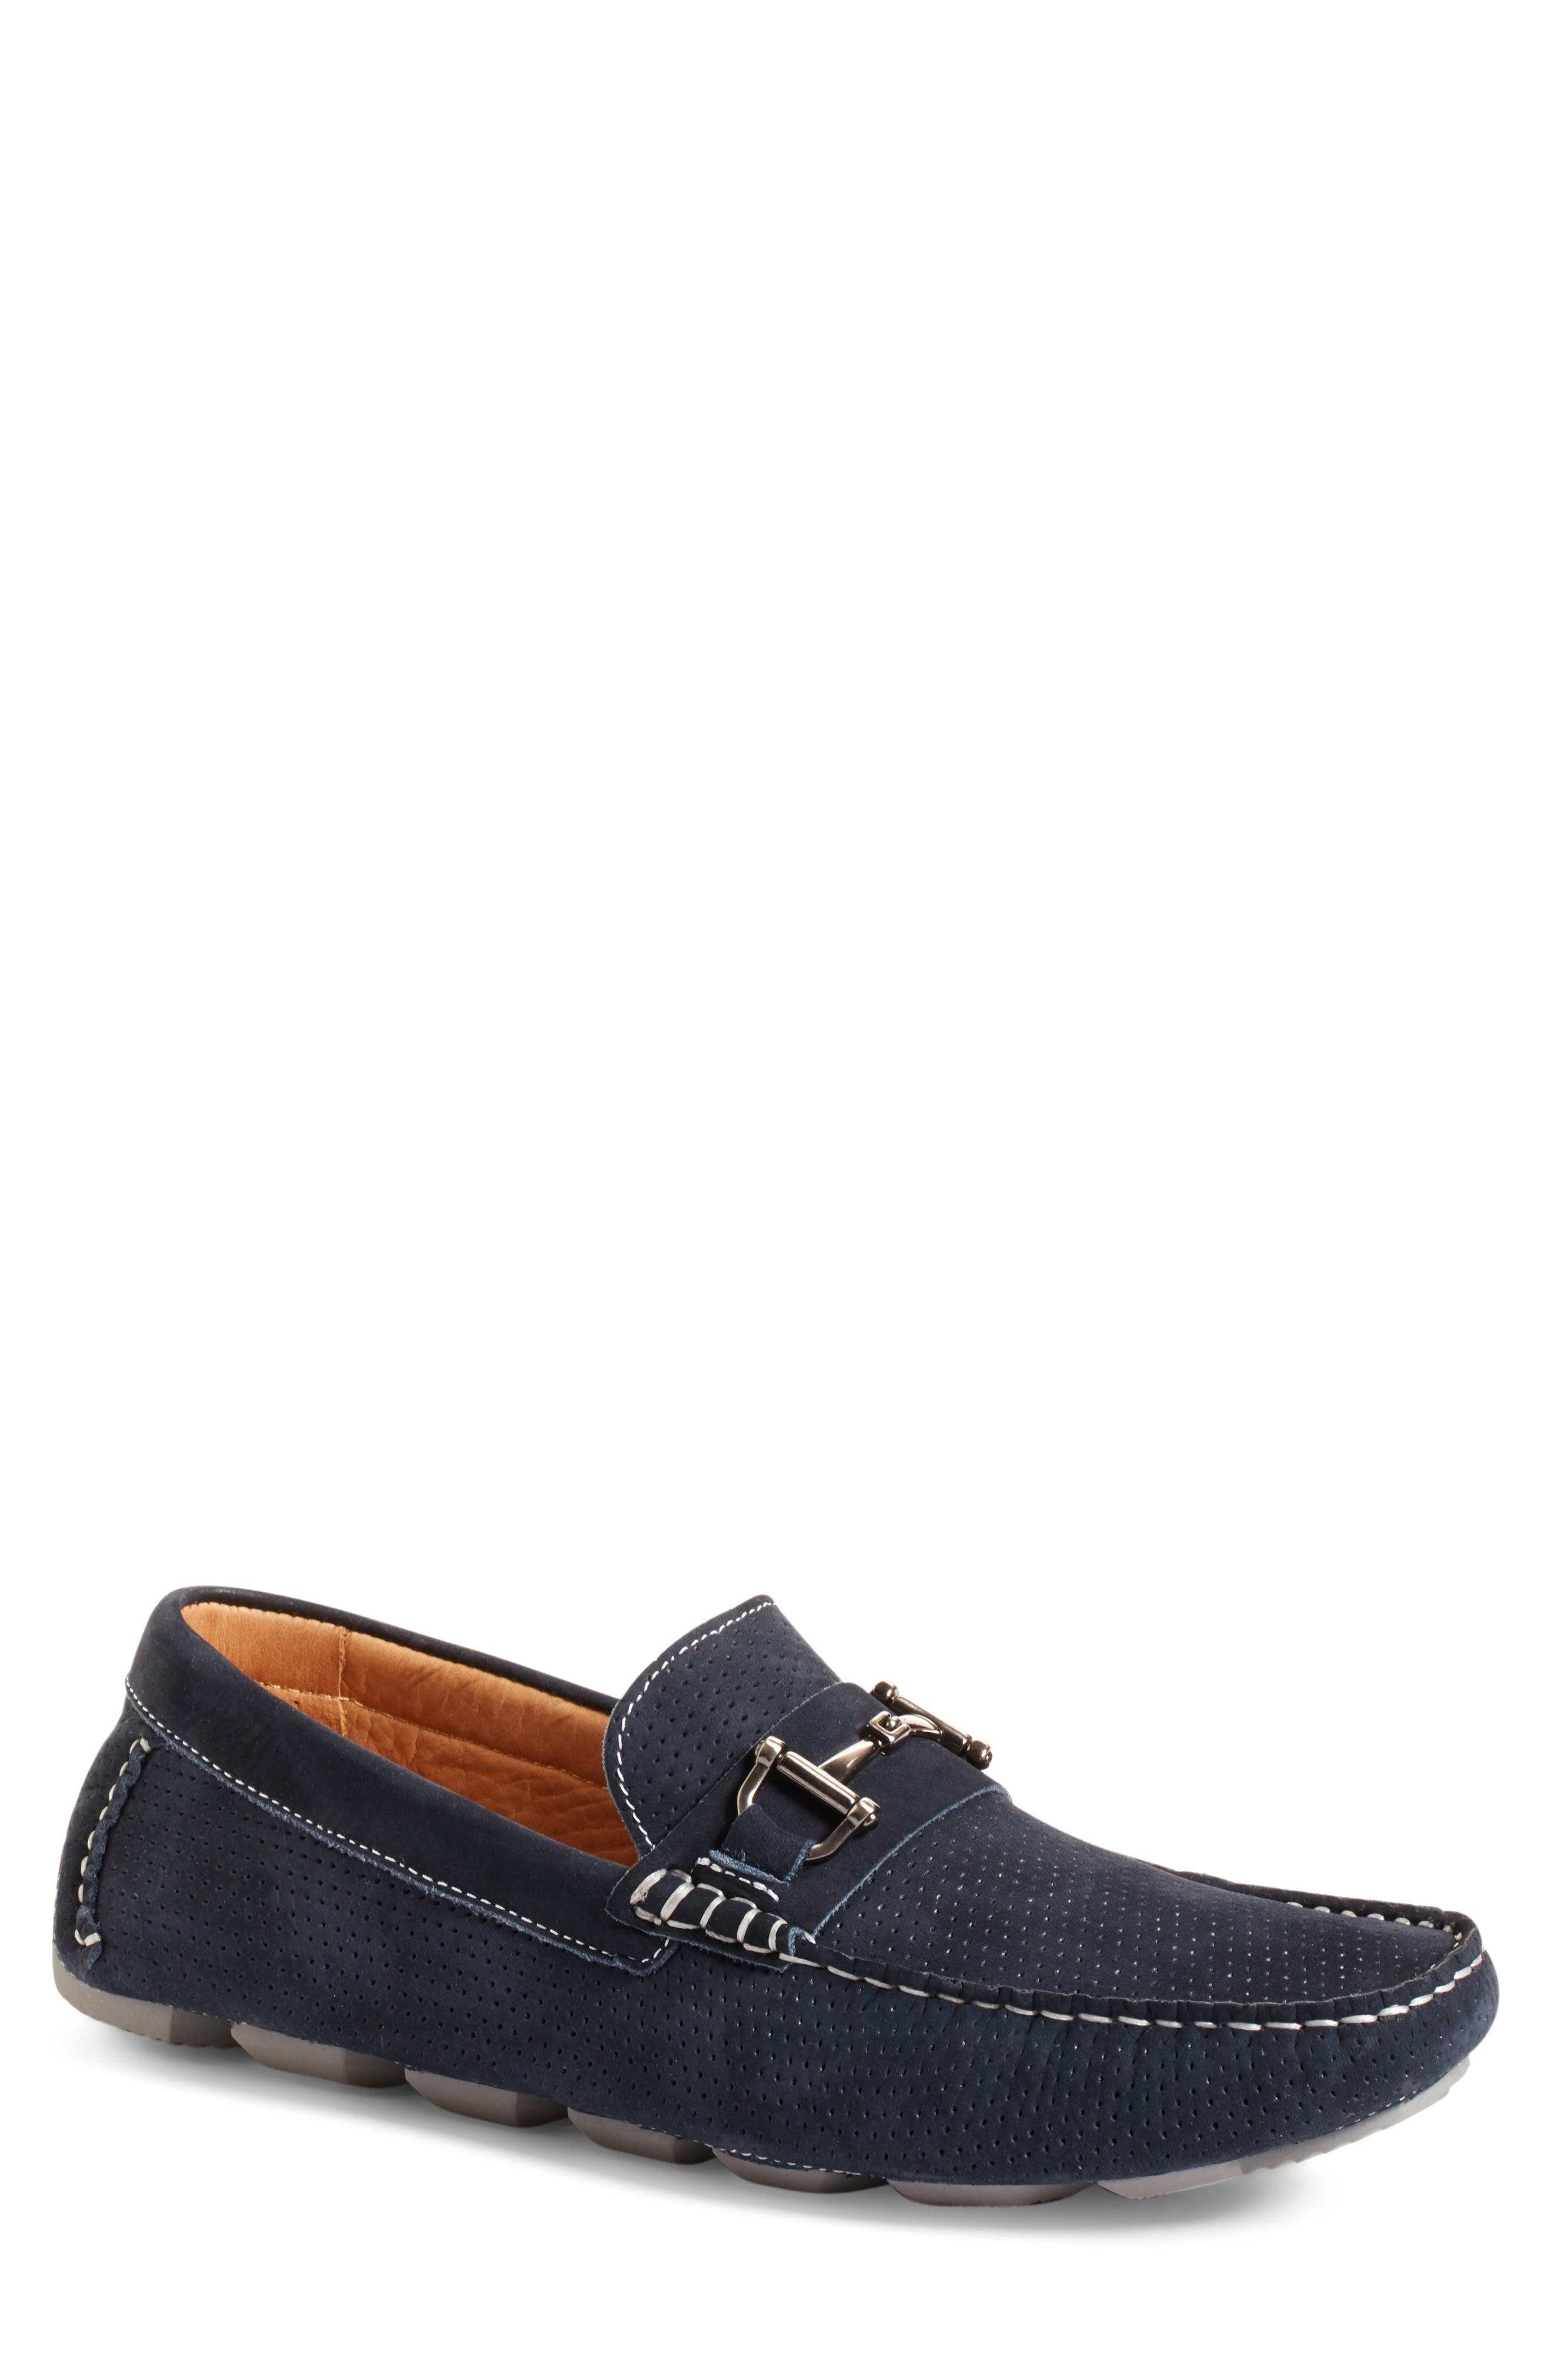 Destin Driving Shoe,                         Main,                         color, Navy Perf Nubuck